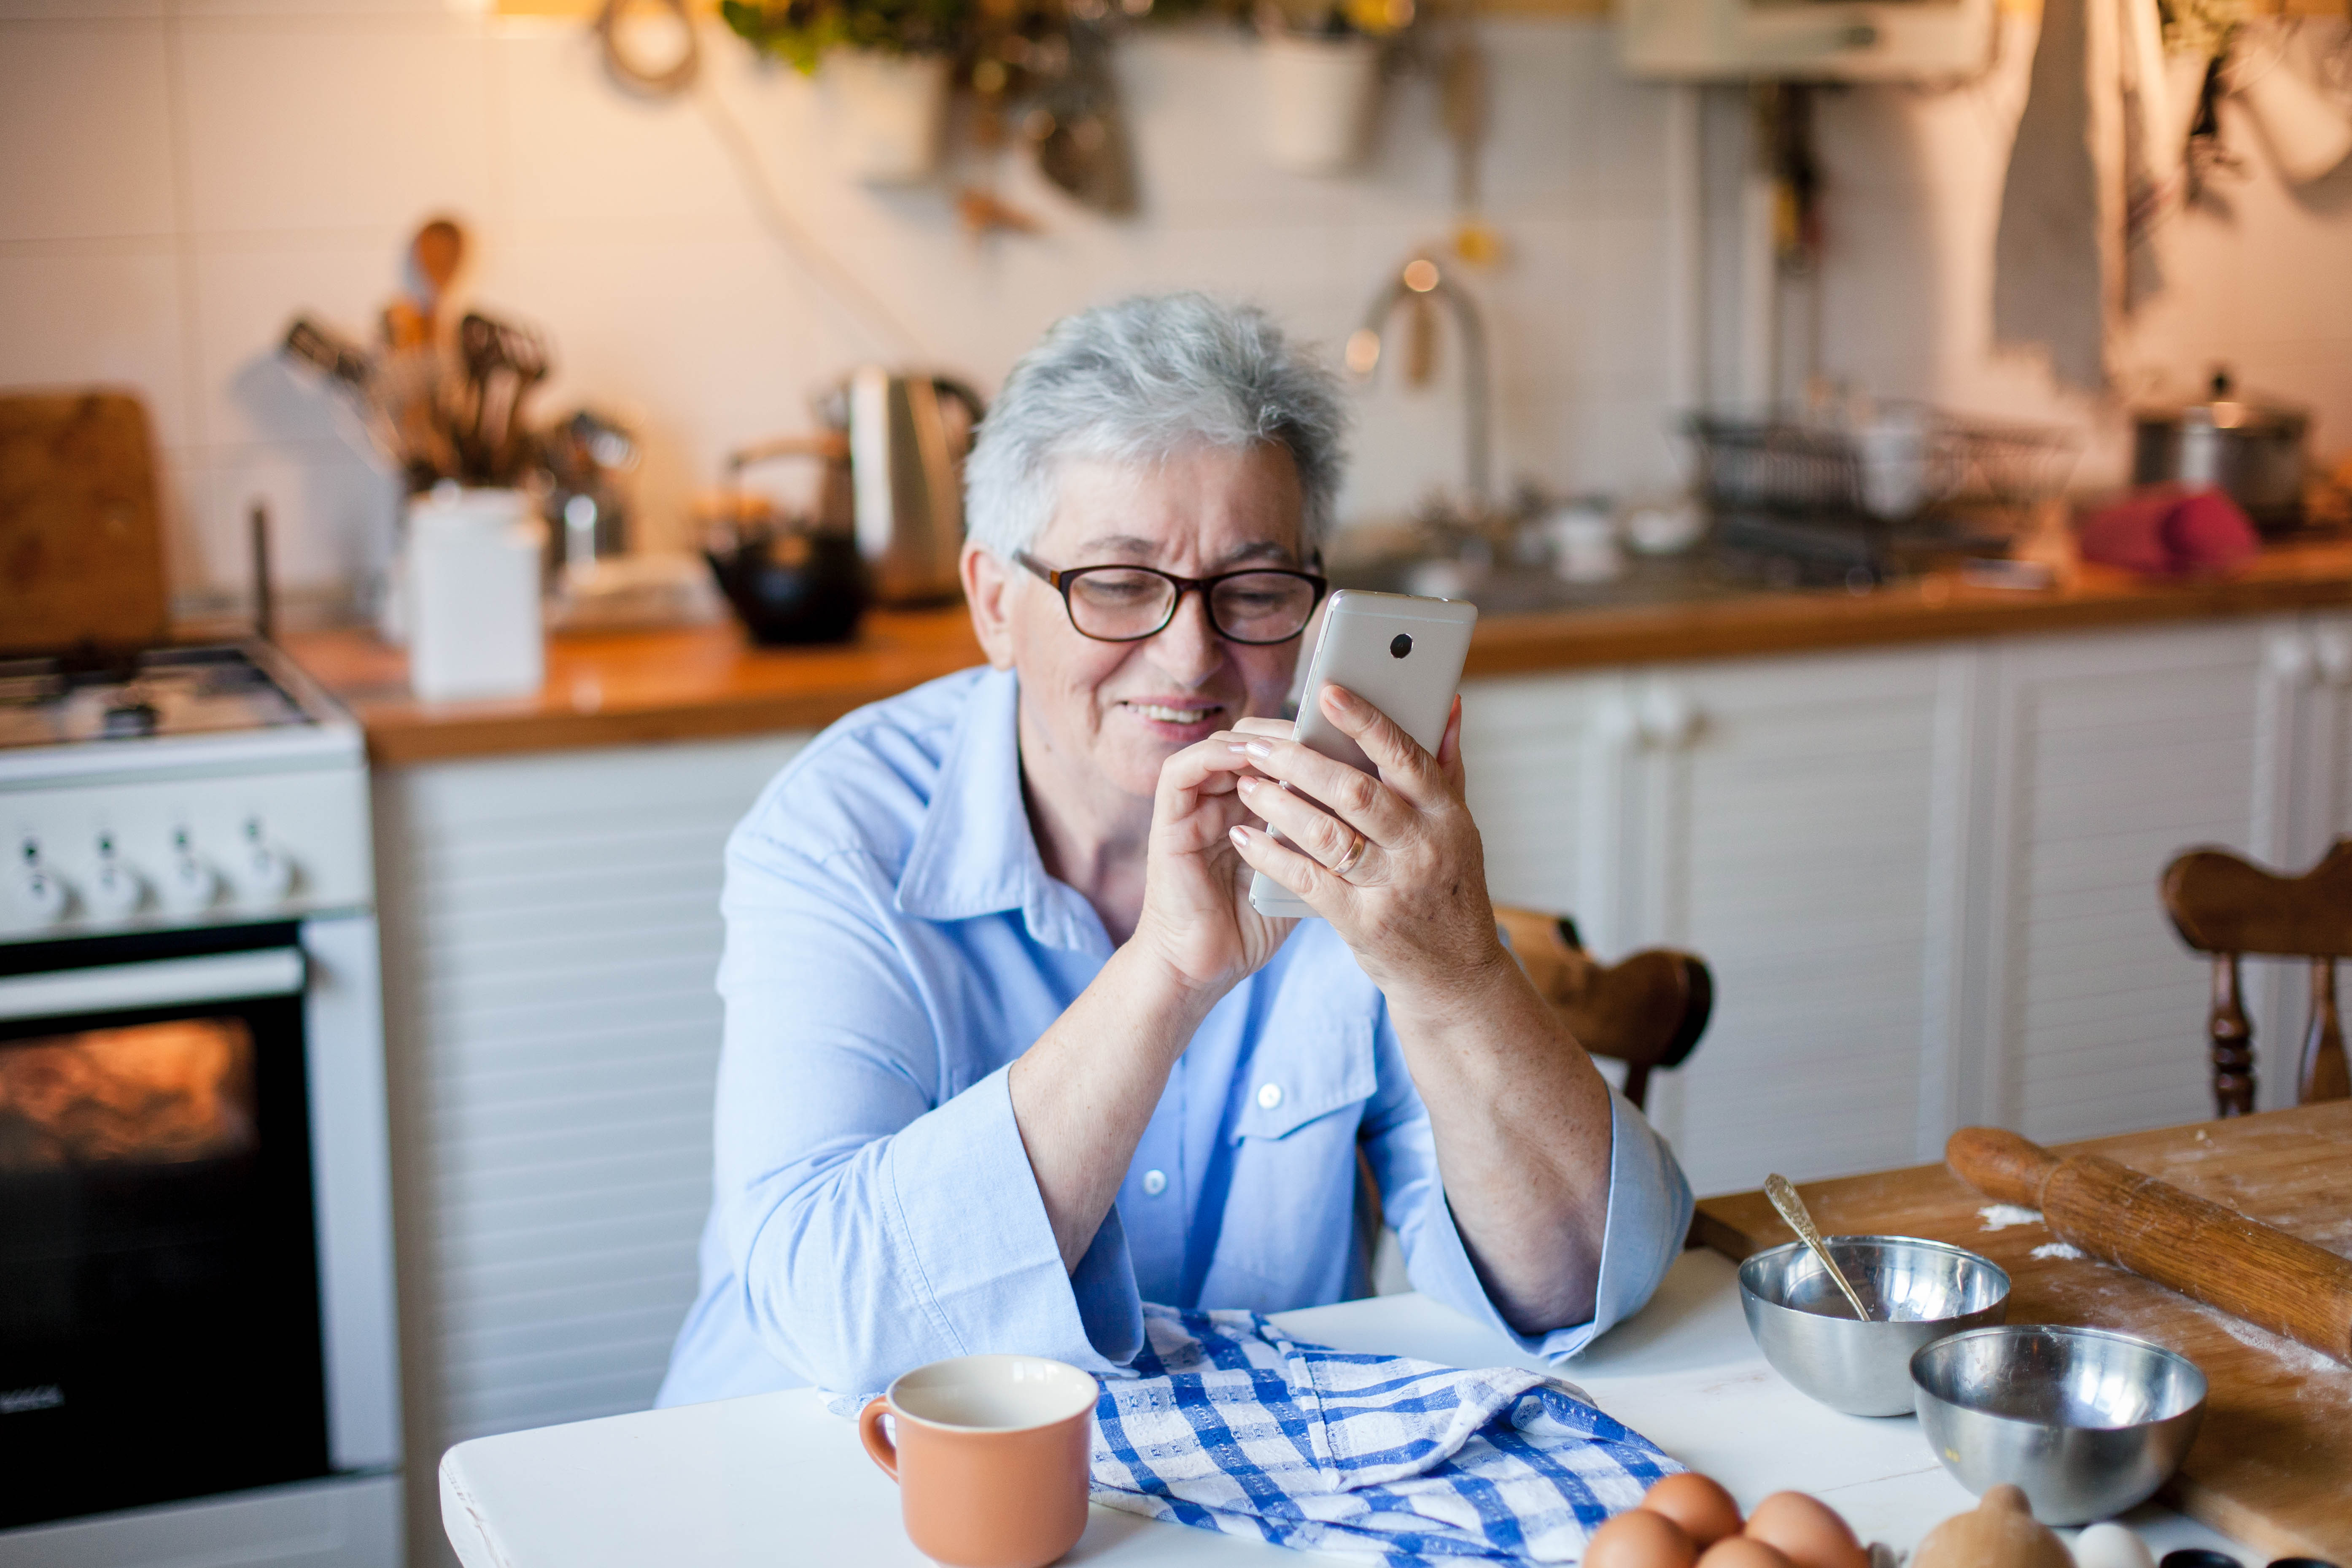 Senior woman using mobile phone at cozy home kitchen. Retired person shopping online. People connection, communication with gadget, delivery in isolation, distance healthcare. Lifestyle moment.